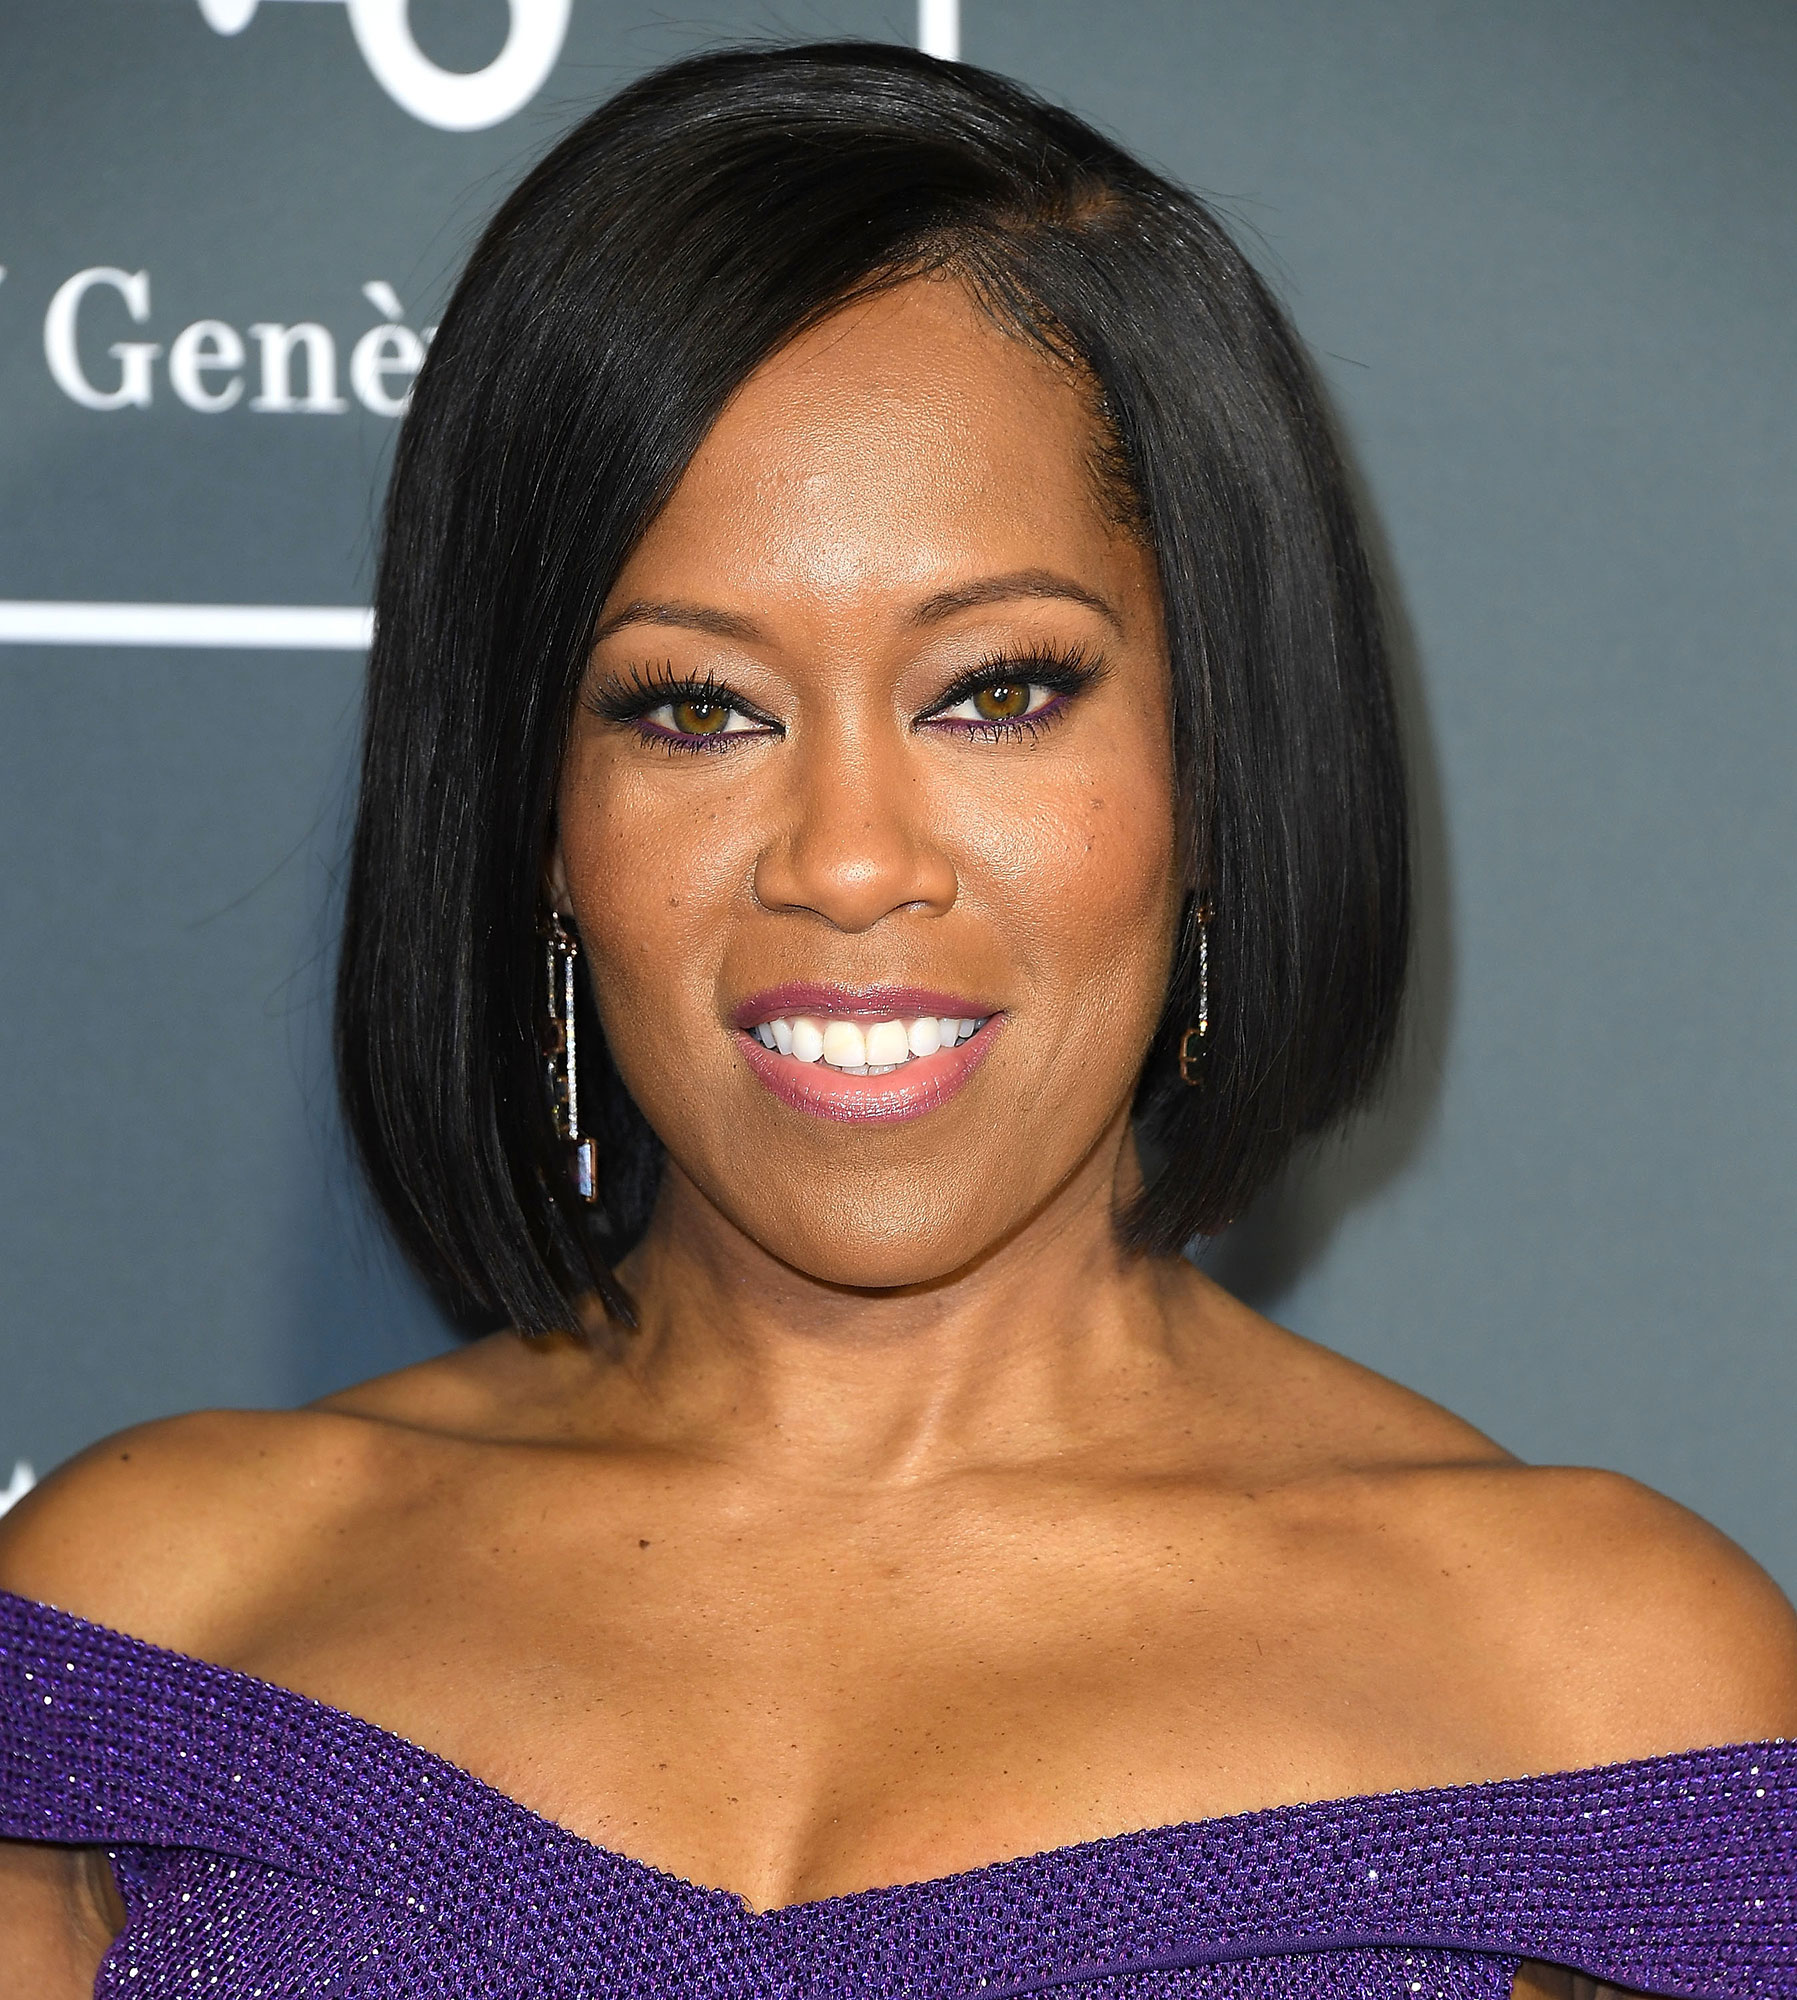 Regina King Critics' Choice Awards 2019 - With a sharp blunt bob and lavender lids.